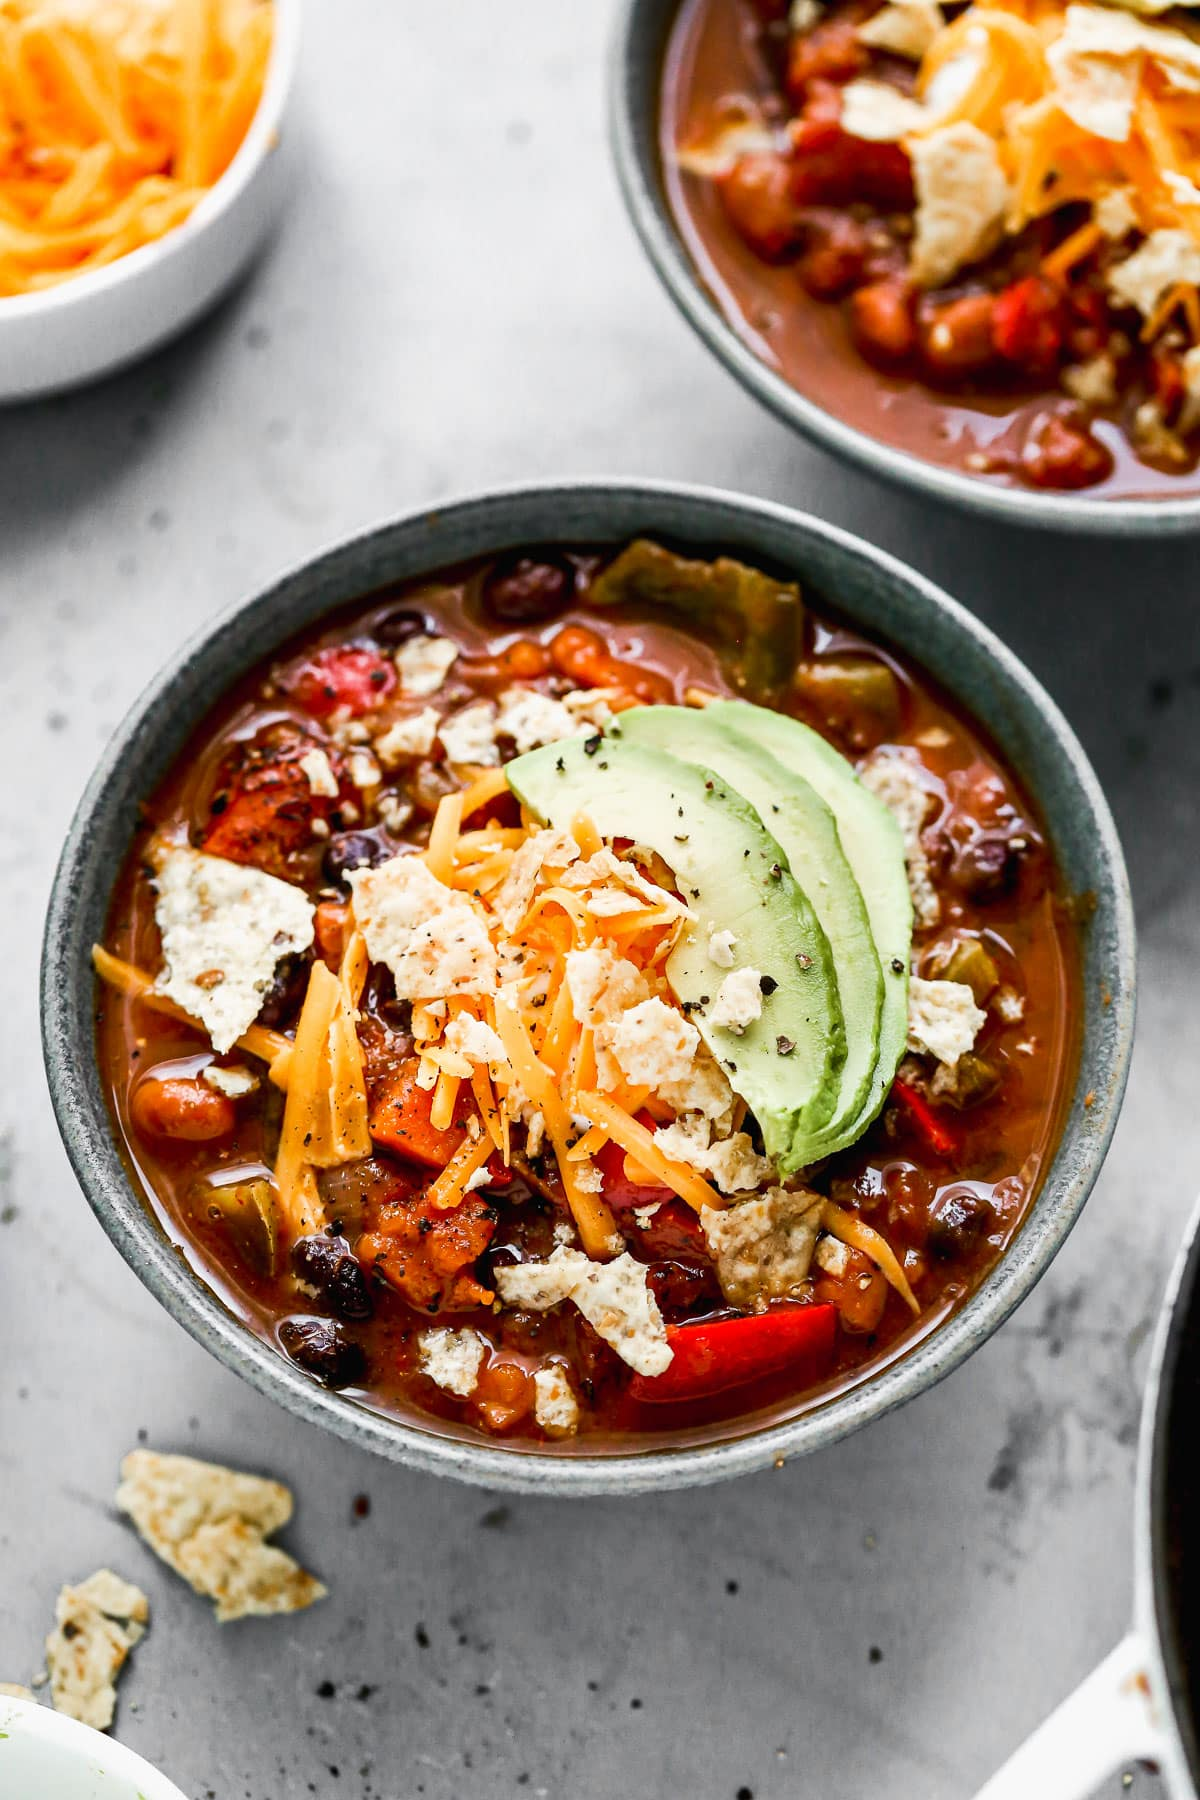 A bowl of vegetarian chili with avocado